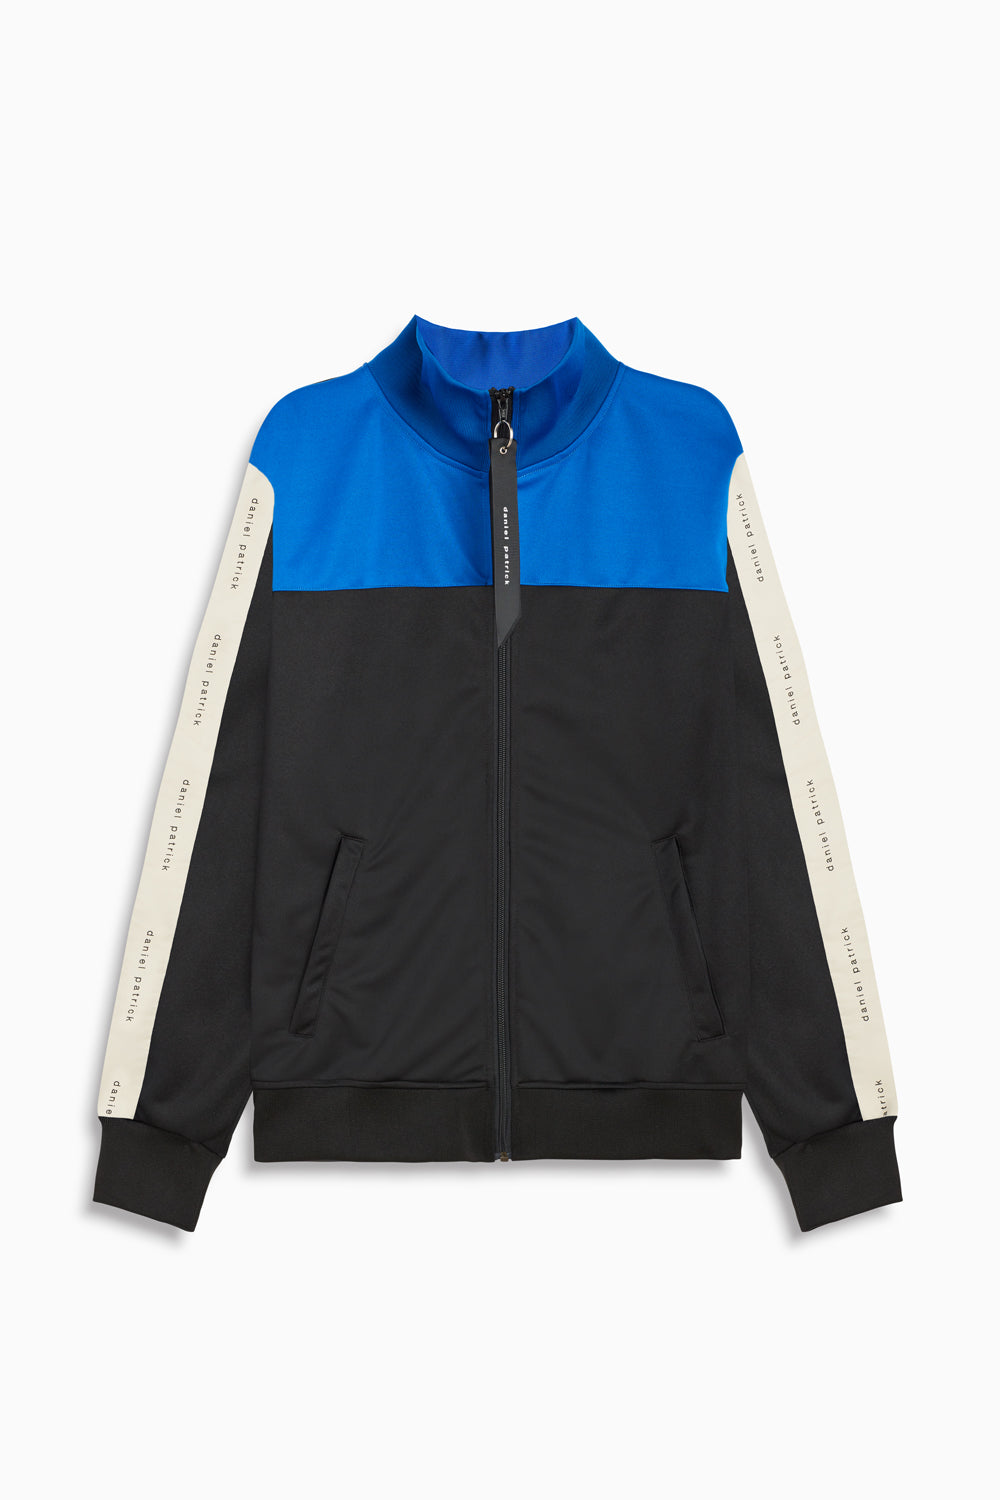 slim track jacket in black/cobalt/ivory by daniel patrick